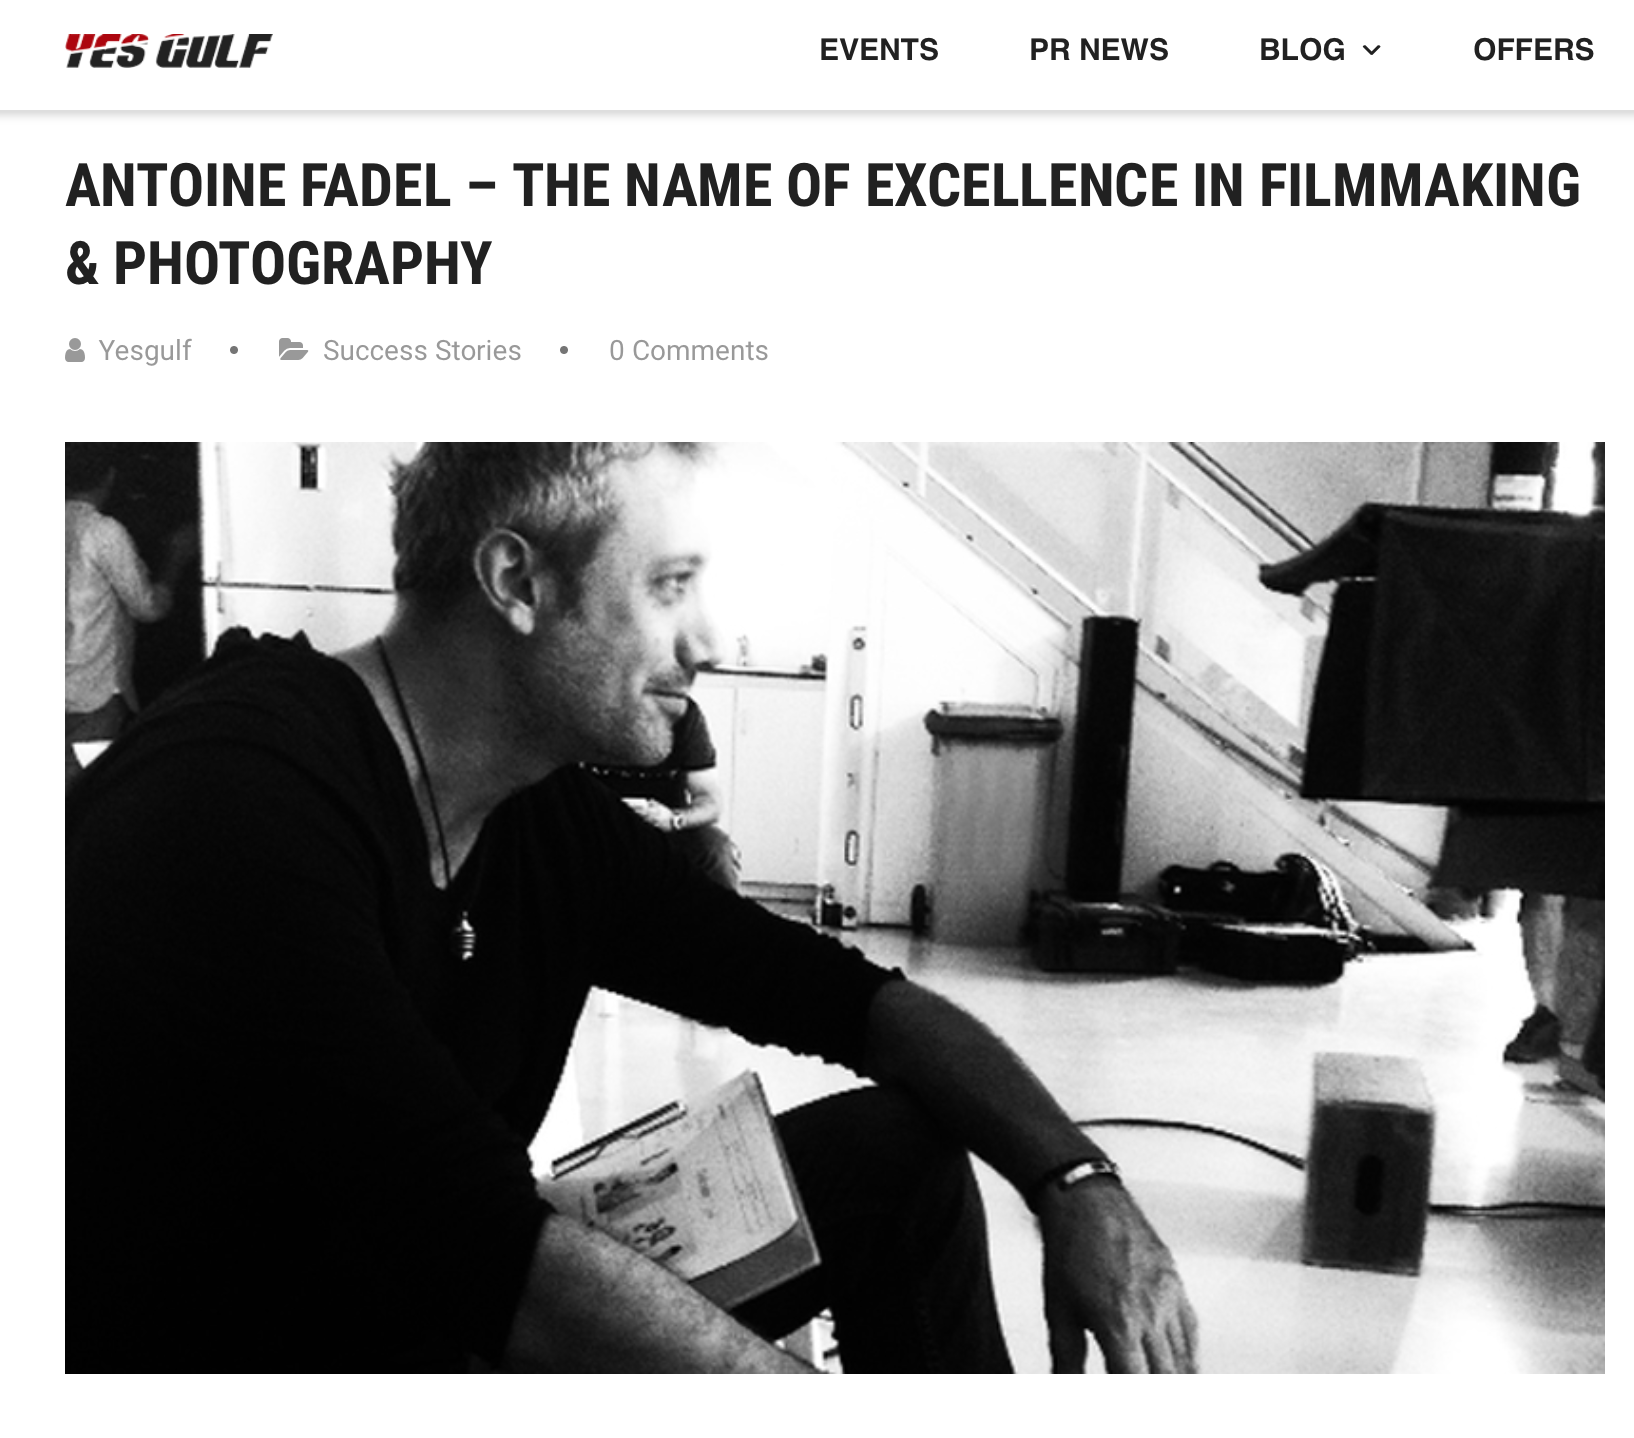 http://yesgulf.com/antoine-fadel-the-name-of-excellence-in-filmmaking-photography/